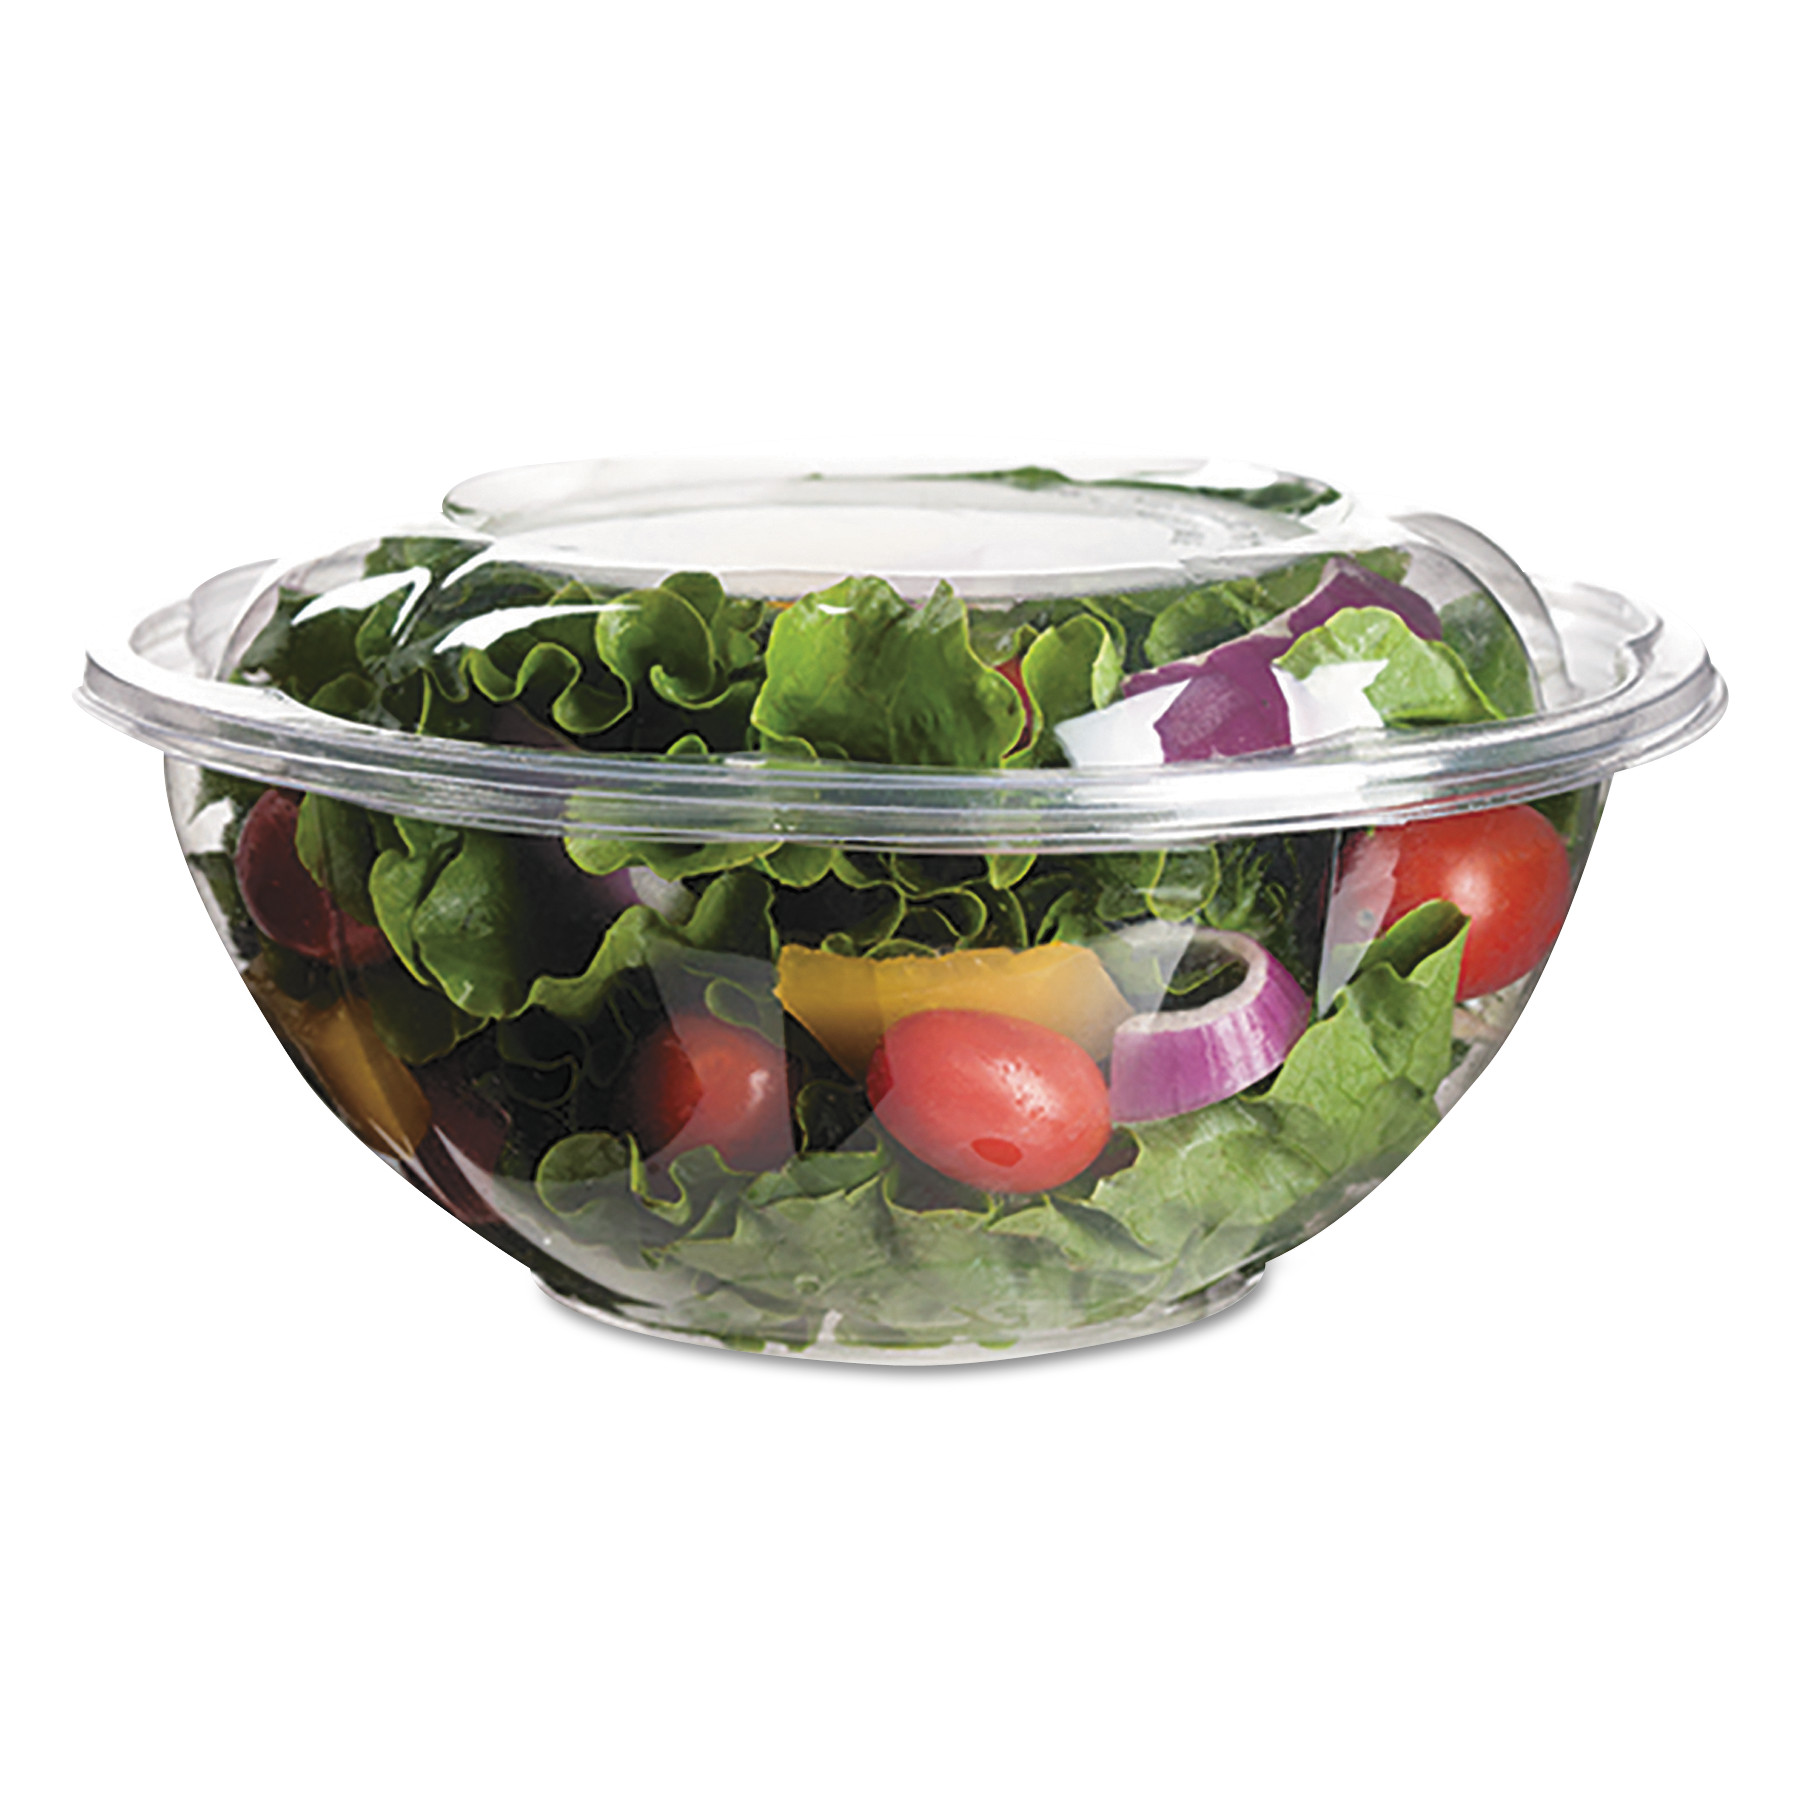 Eco-Products Renewable and Compostable Containers, 18 oz, Clear, Clear, Clear, 150 Carton 4caa75